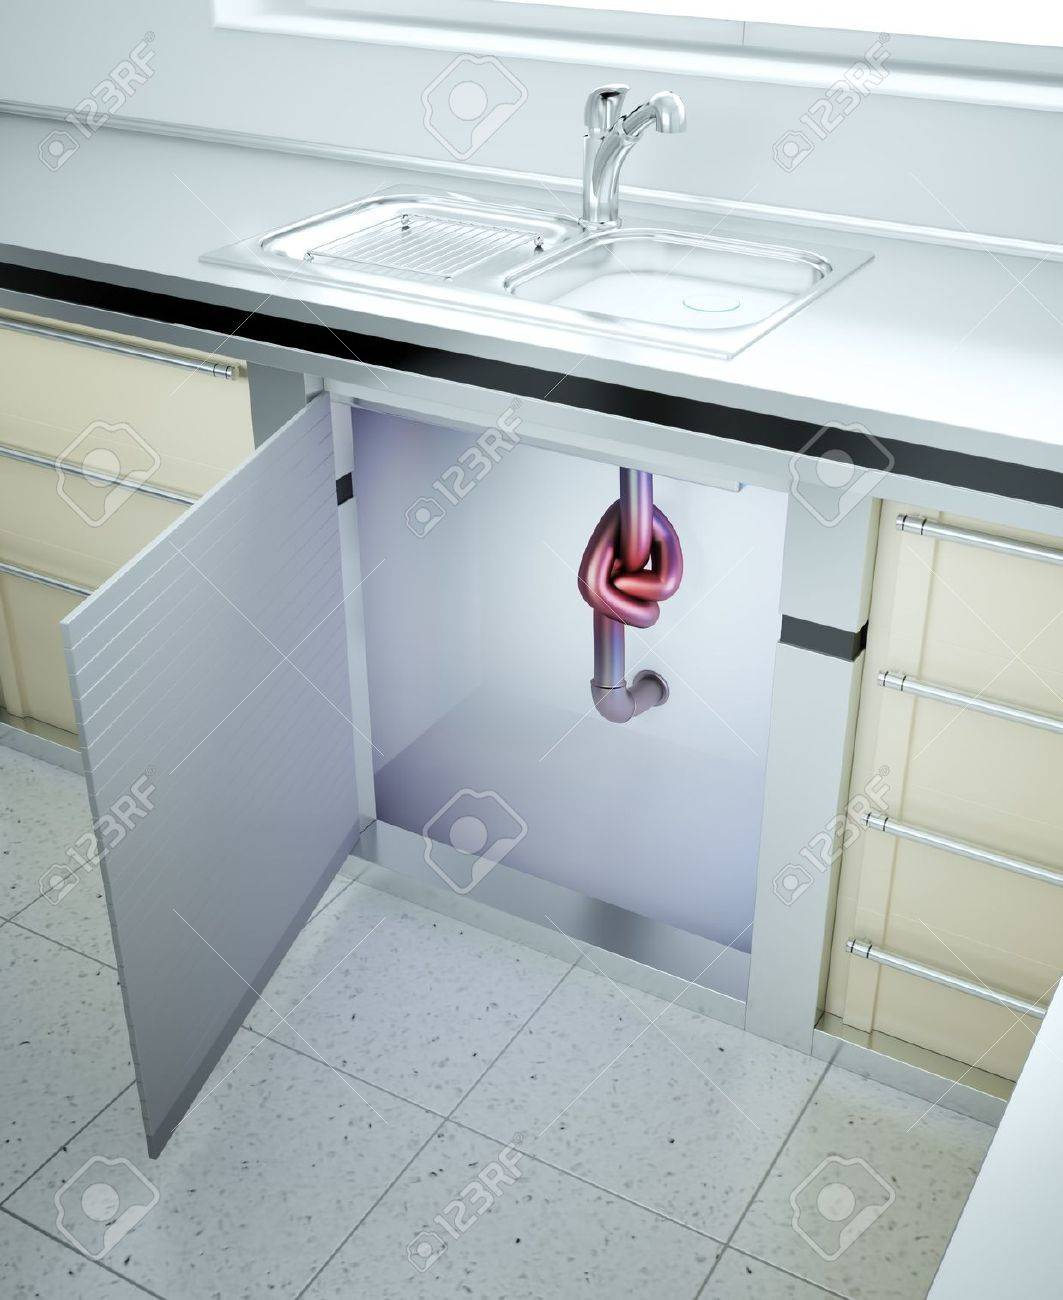 Clogged Sink - Drain Pipe With A Knot Stock Photo, Picture And ...